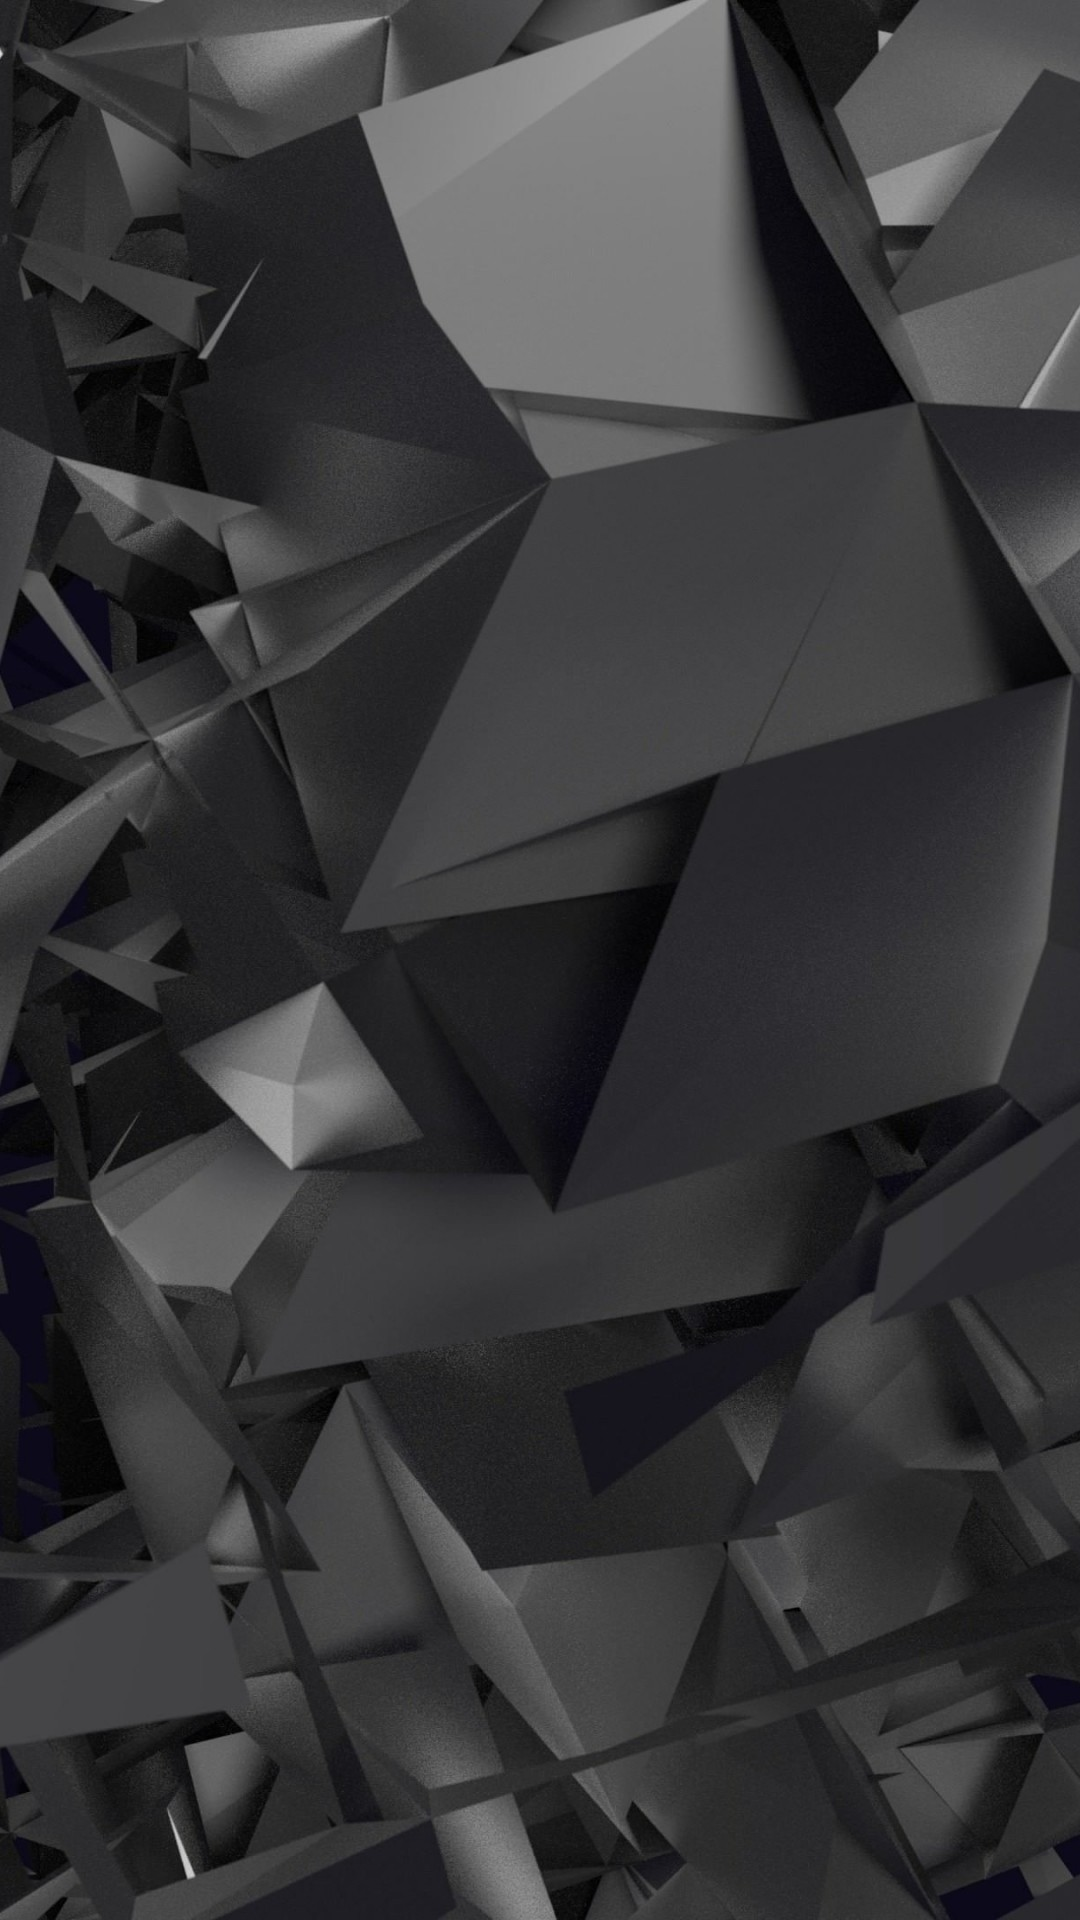 3D Geometry Wallpaper for SAMSUNG Galaxy S5